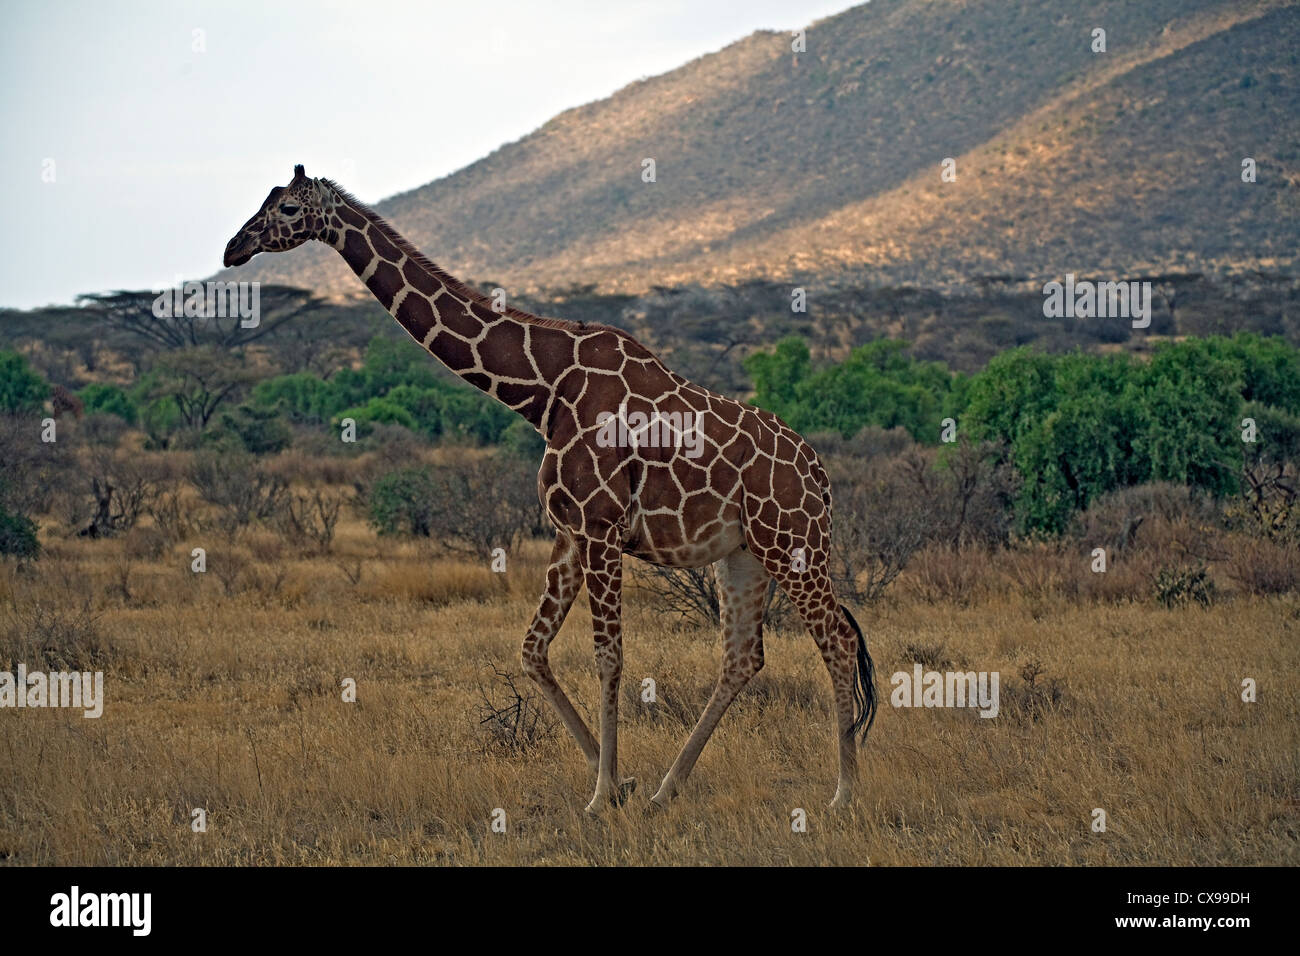 Giraffe (Camelopardalis) in Safari - Stock Image